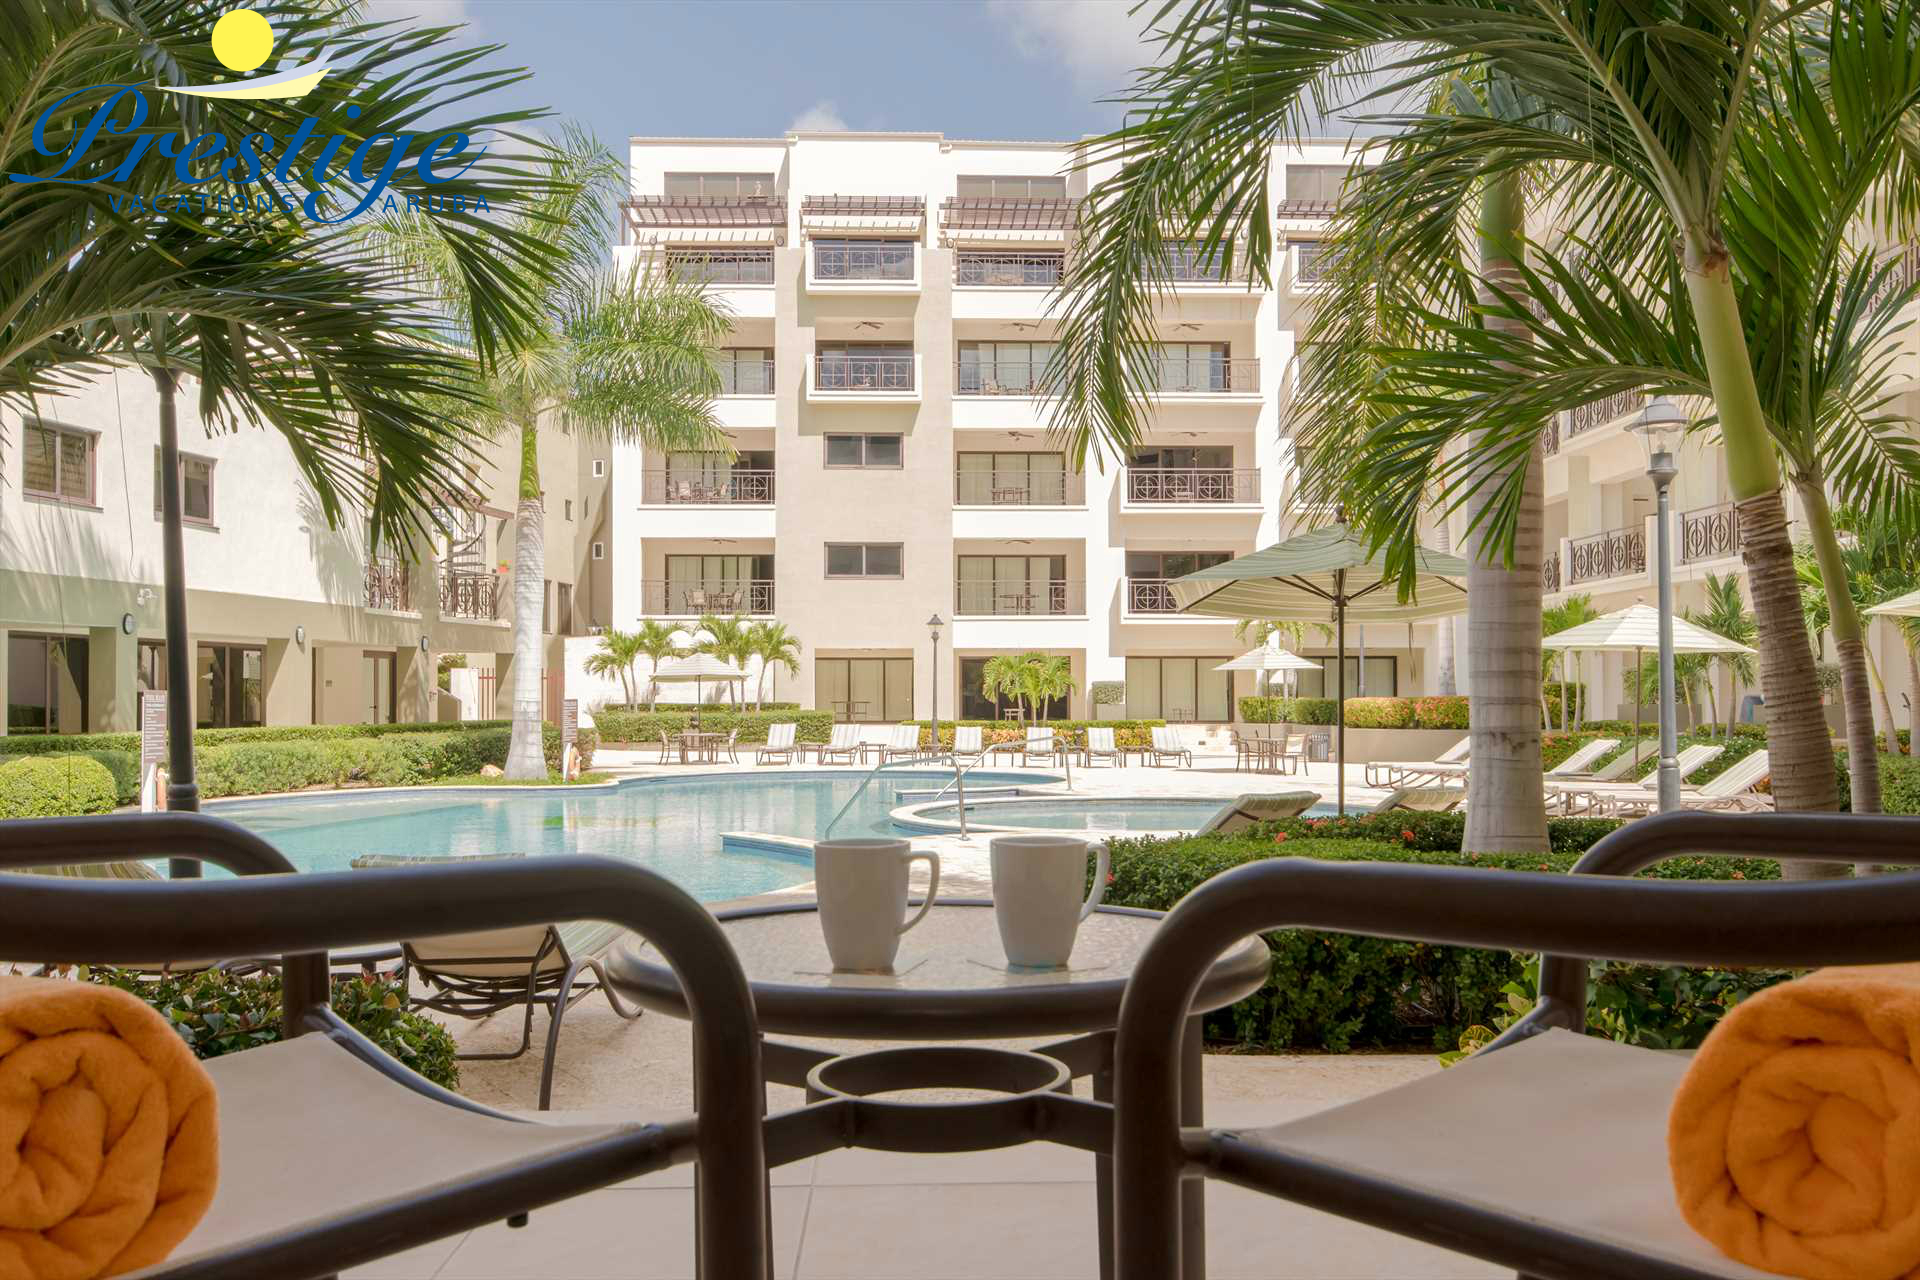 Relaxing days are yours to enjoy during your stay at the Desert Fan Palm One-bedroom condo